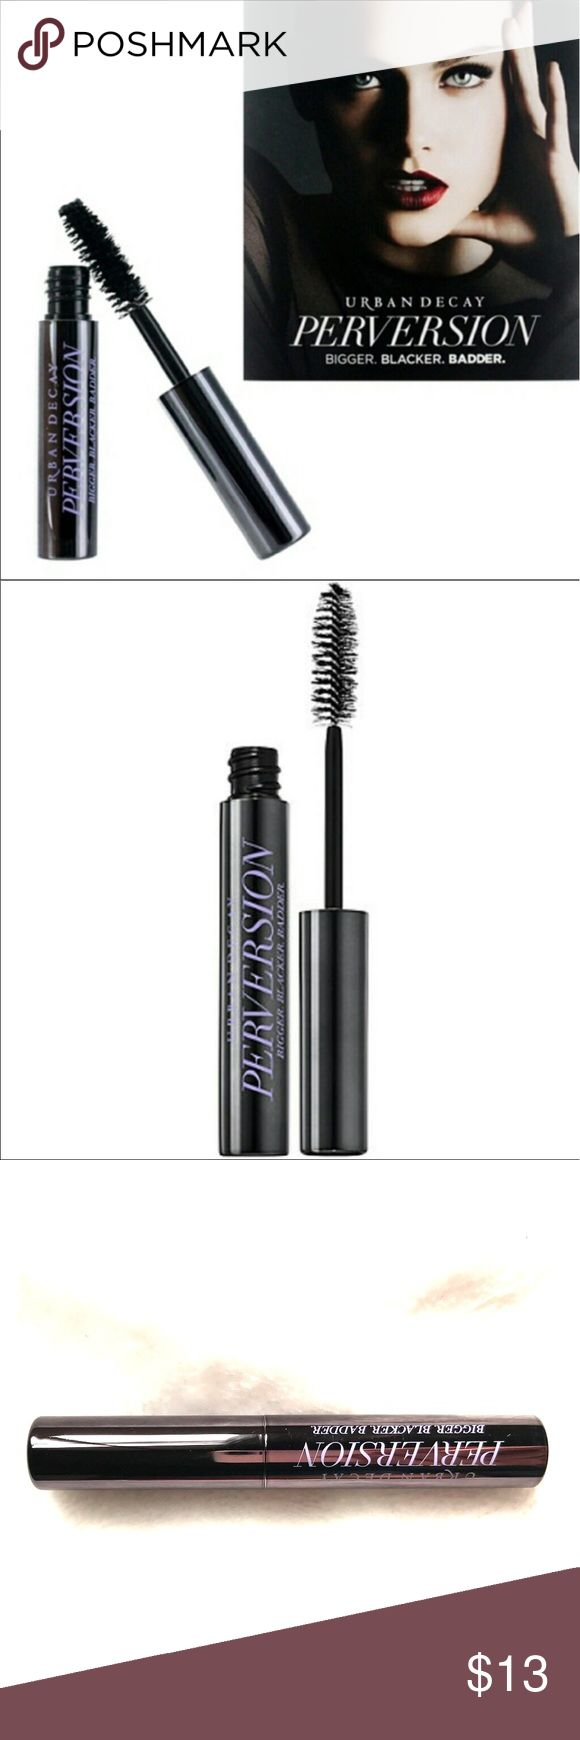 URBAN DECAY Perversion Mascara Travel Size Urban Decay Perversion Mascara new no box and unused. Travel Size 0.10oz. Black. Please let me know if you have any questions. 30% discount when bundling. No trades! Urban Decay Makeup Mascara